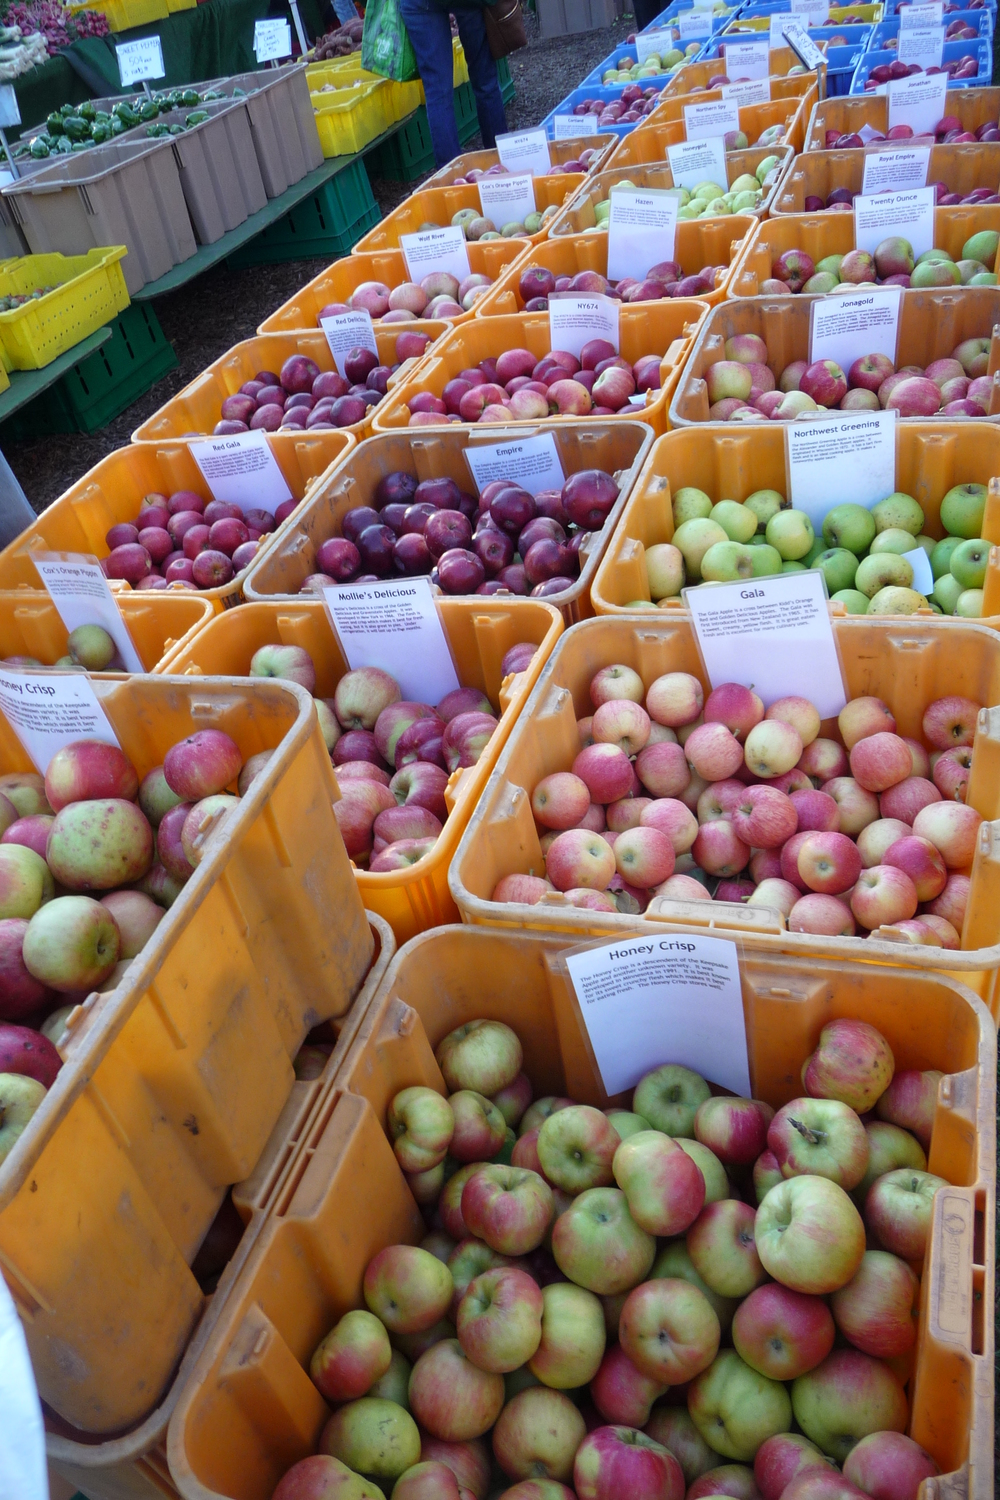 Join me as we explore the many varieties of apples